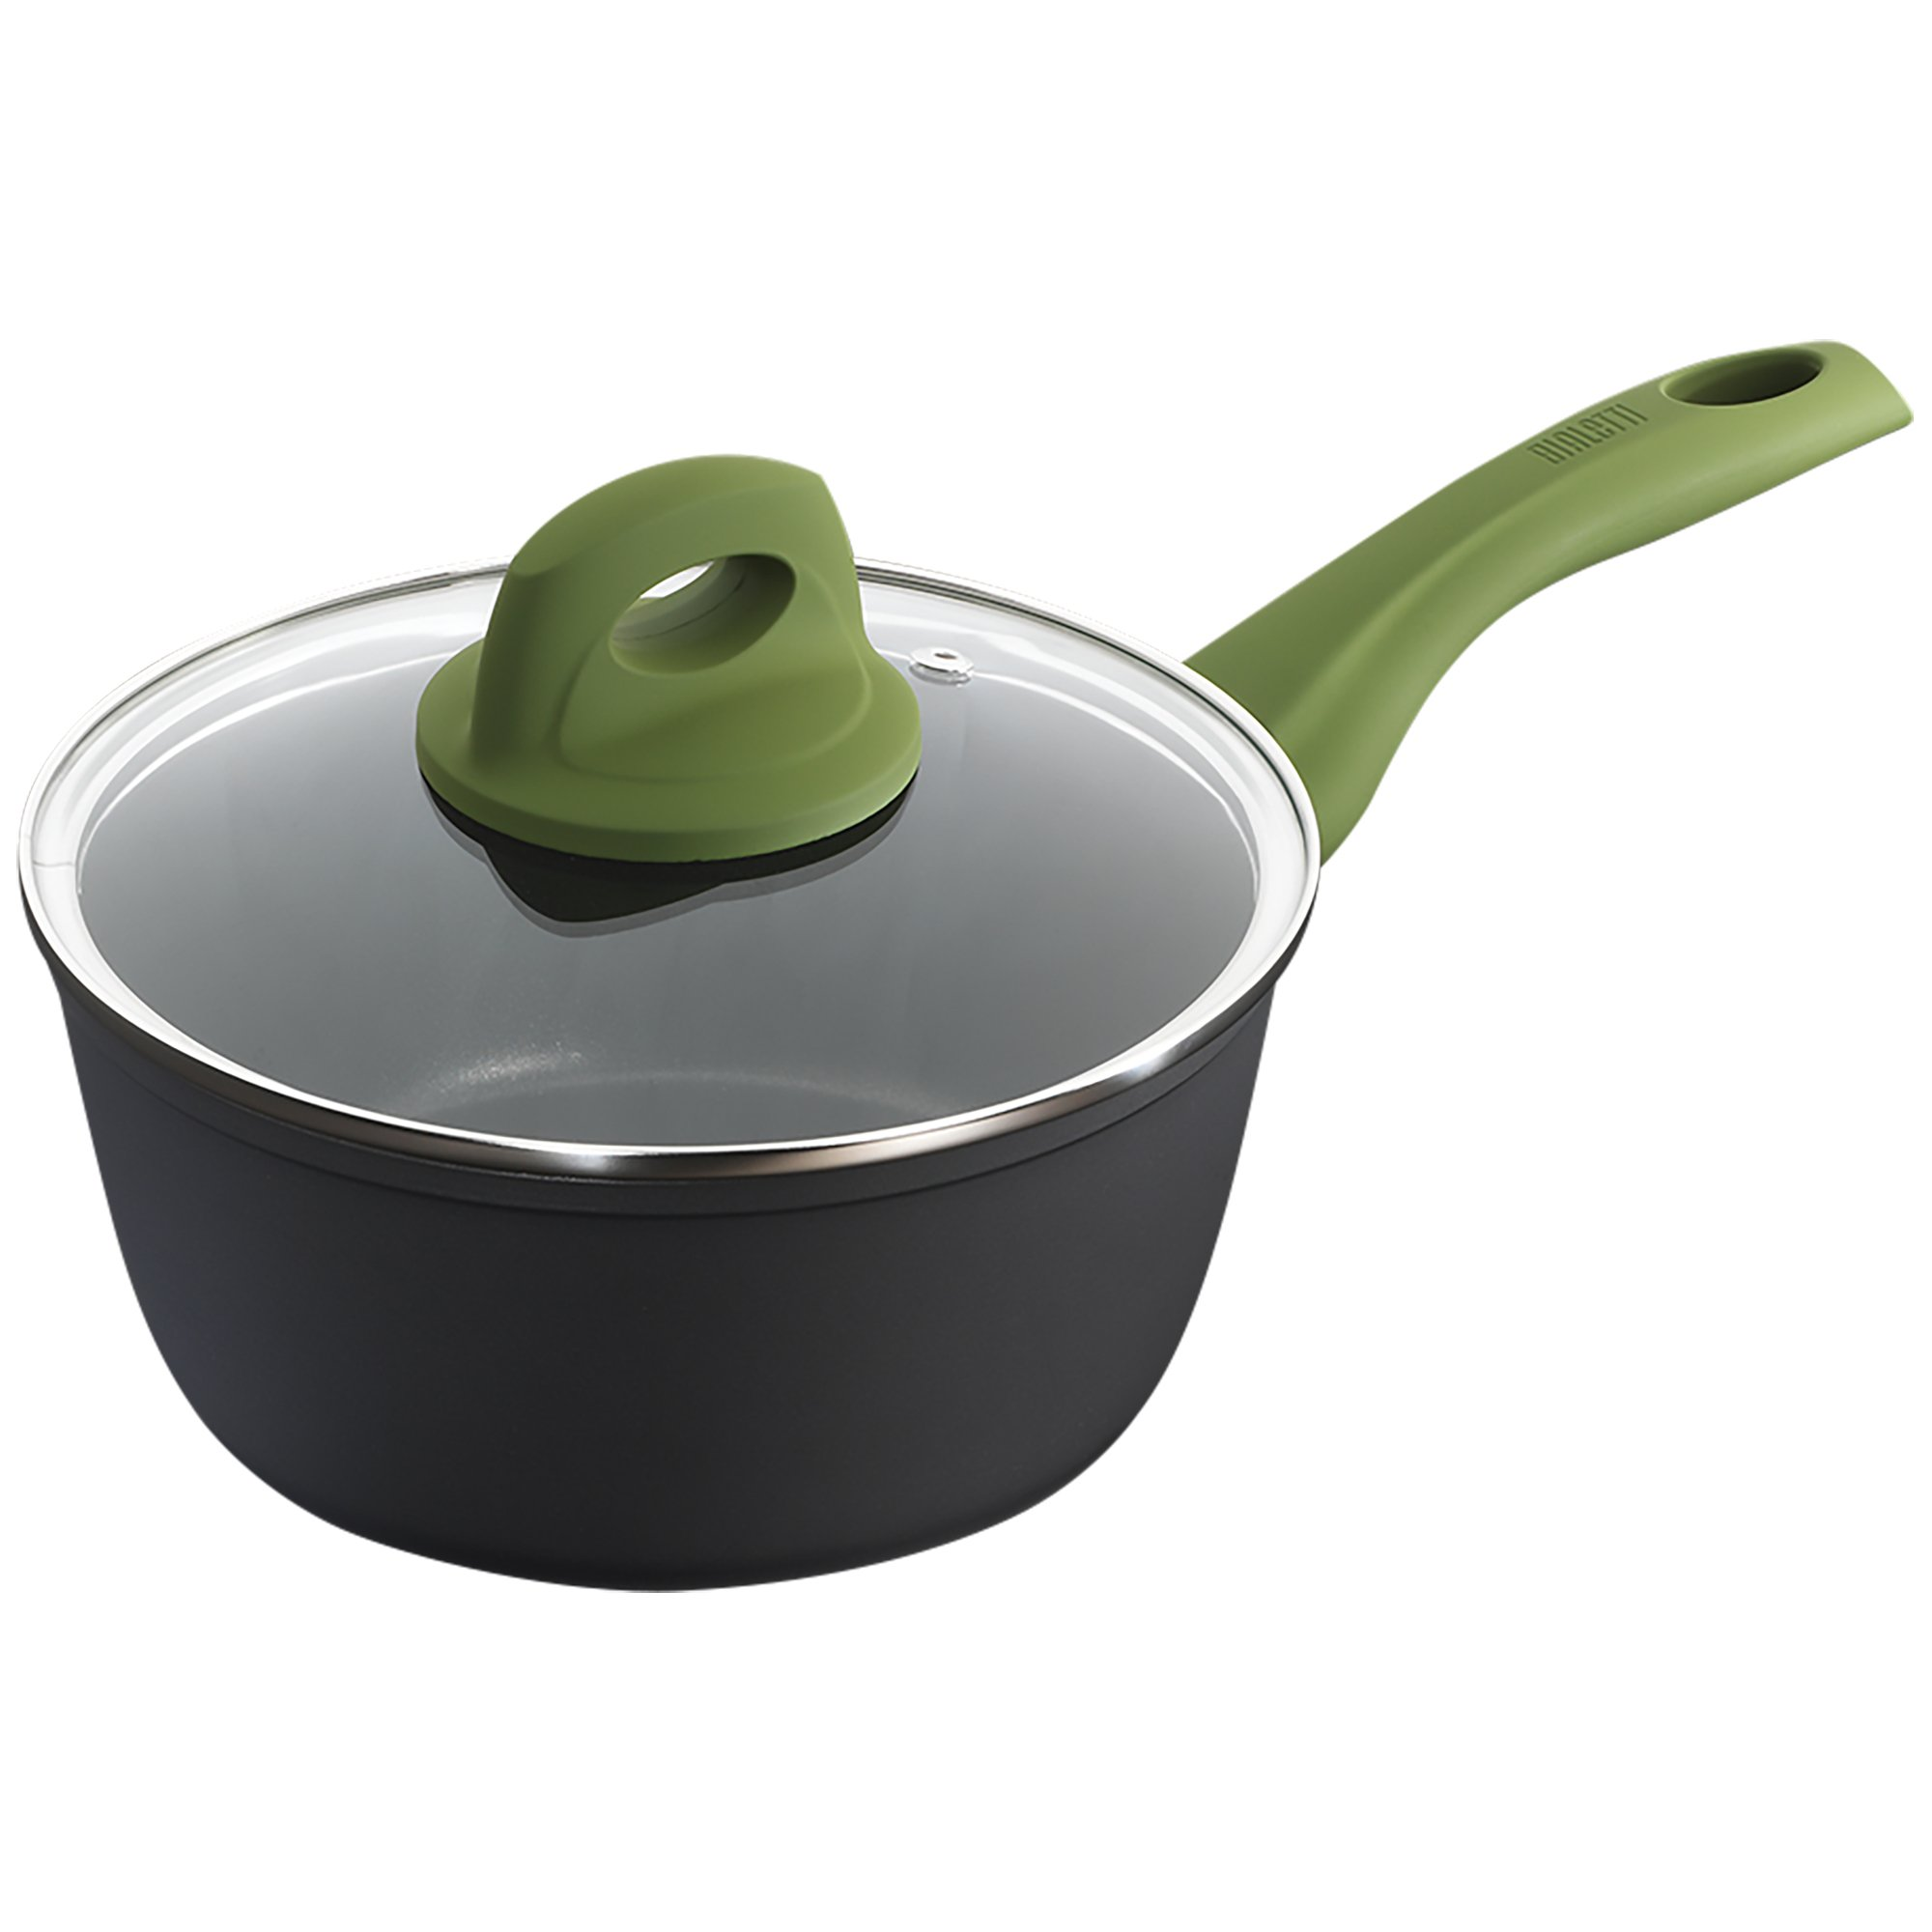 Bialetti Simply Italian Nonstick Covered Sauce Pan, 1.9 quart, Multicolored